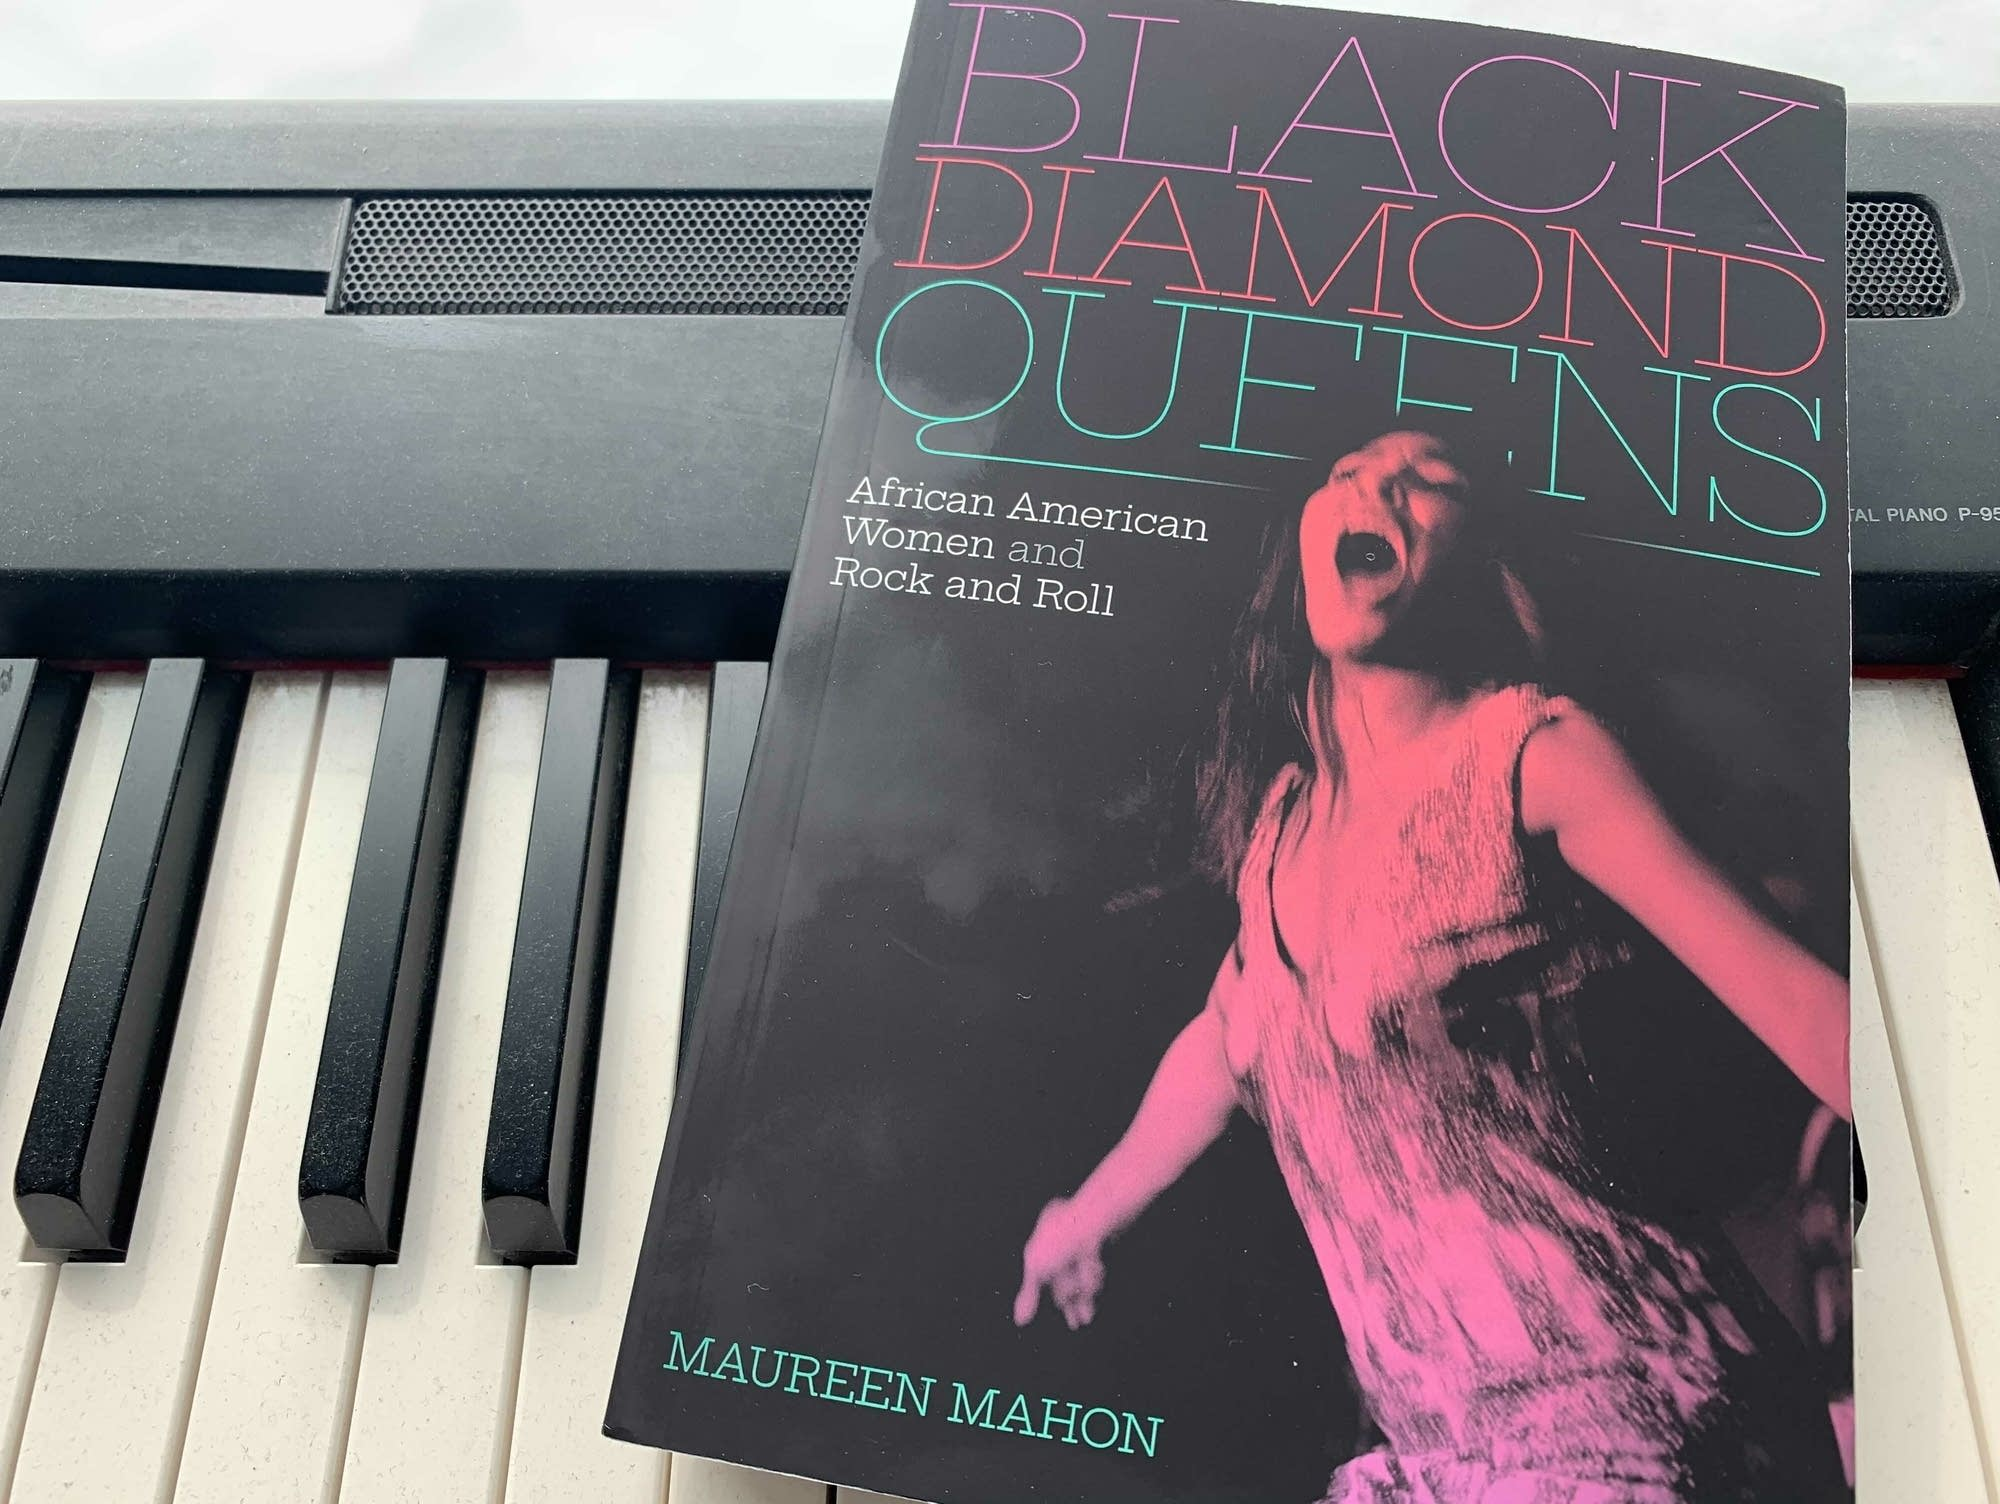 'Black Diamond Queens: African American Women and Rock and Roll.'